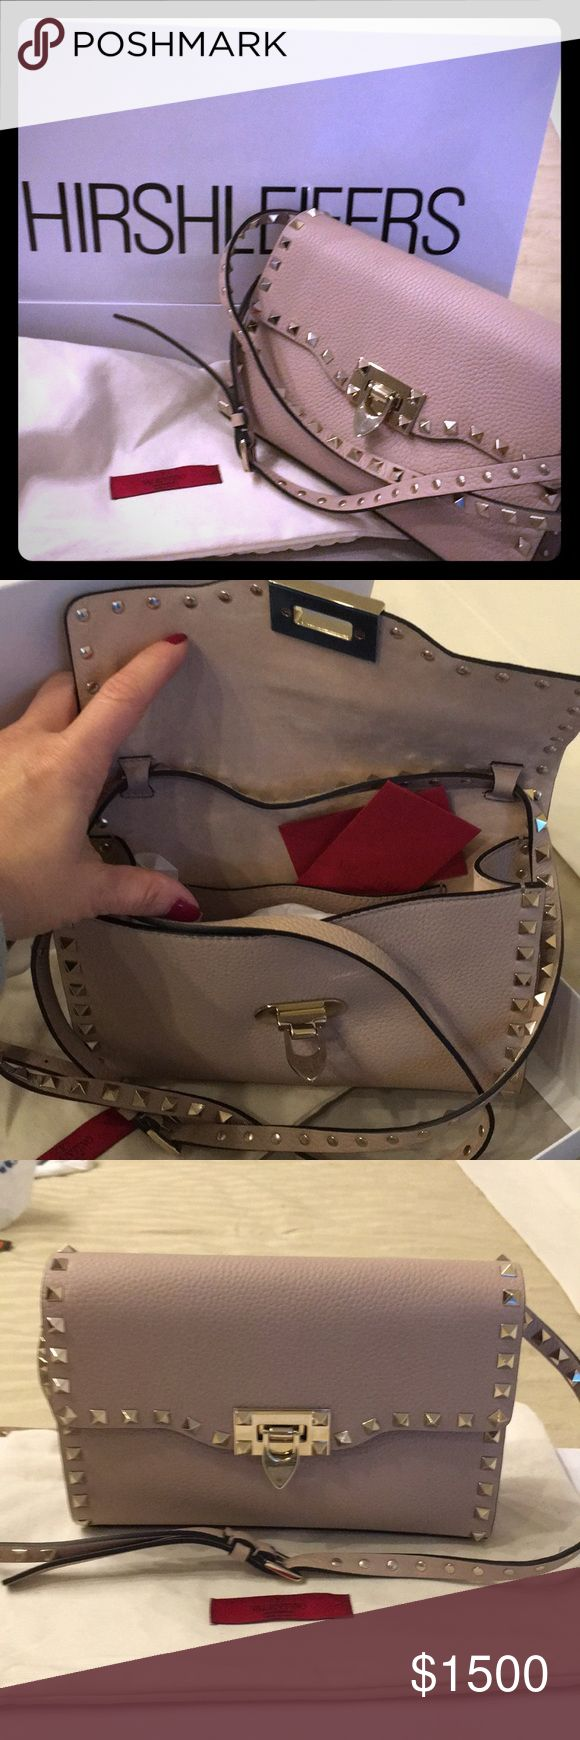 Valentino Rockstud Blush NOT FOR SALE 💋💋🔥🔥Christmas Gift can't wait to use it !!!! Valentino Bags Shoulder Bags